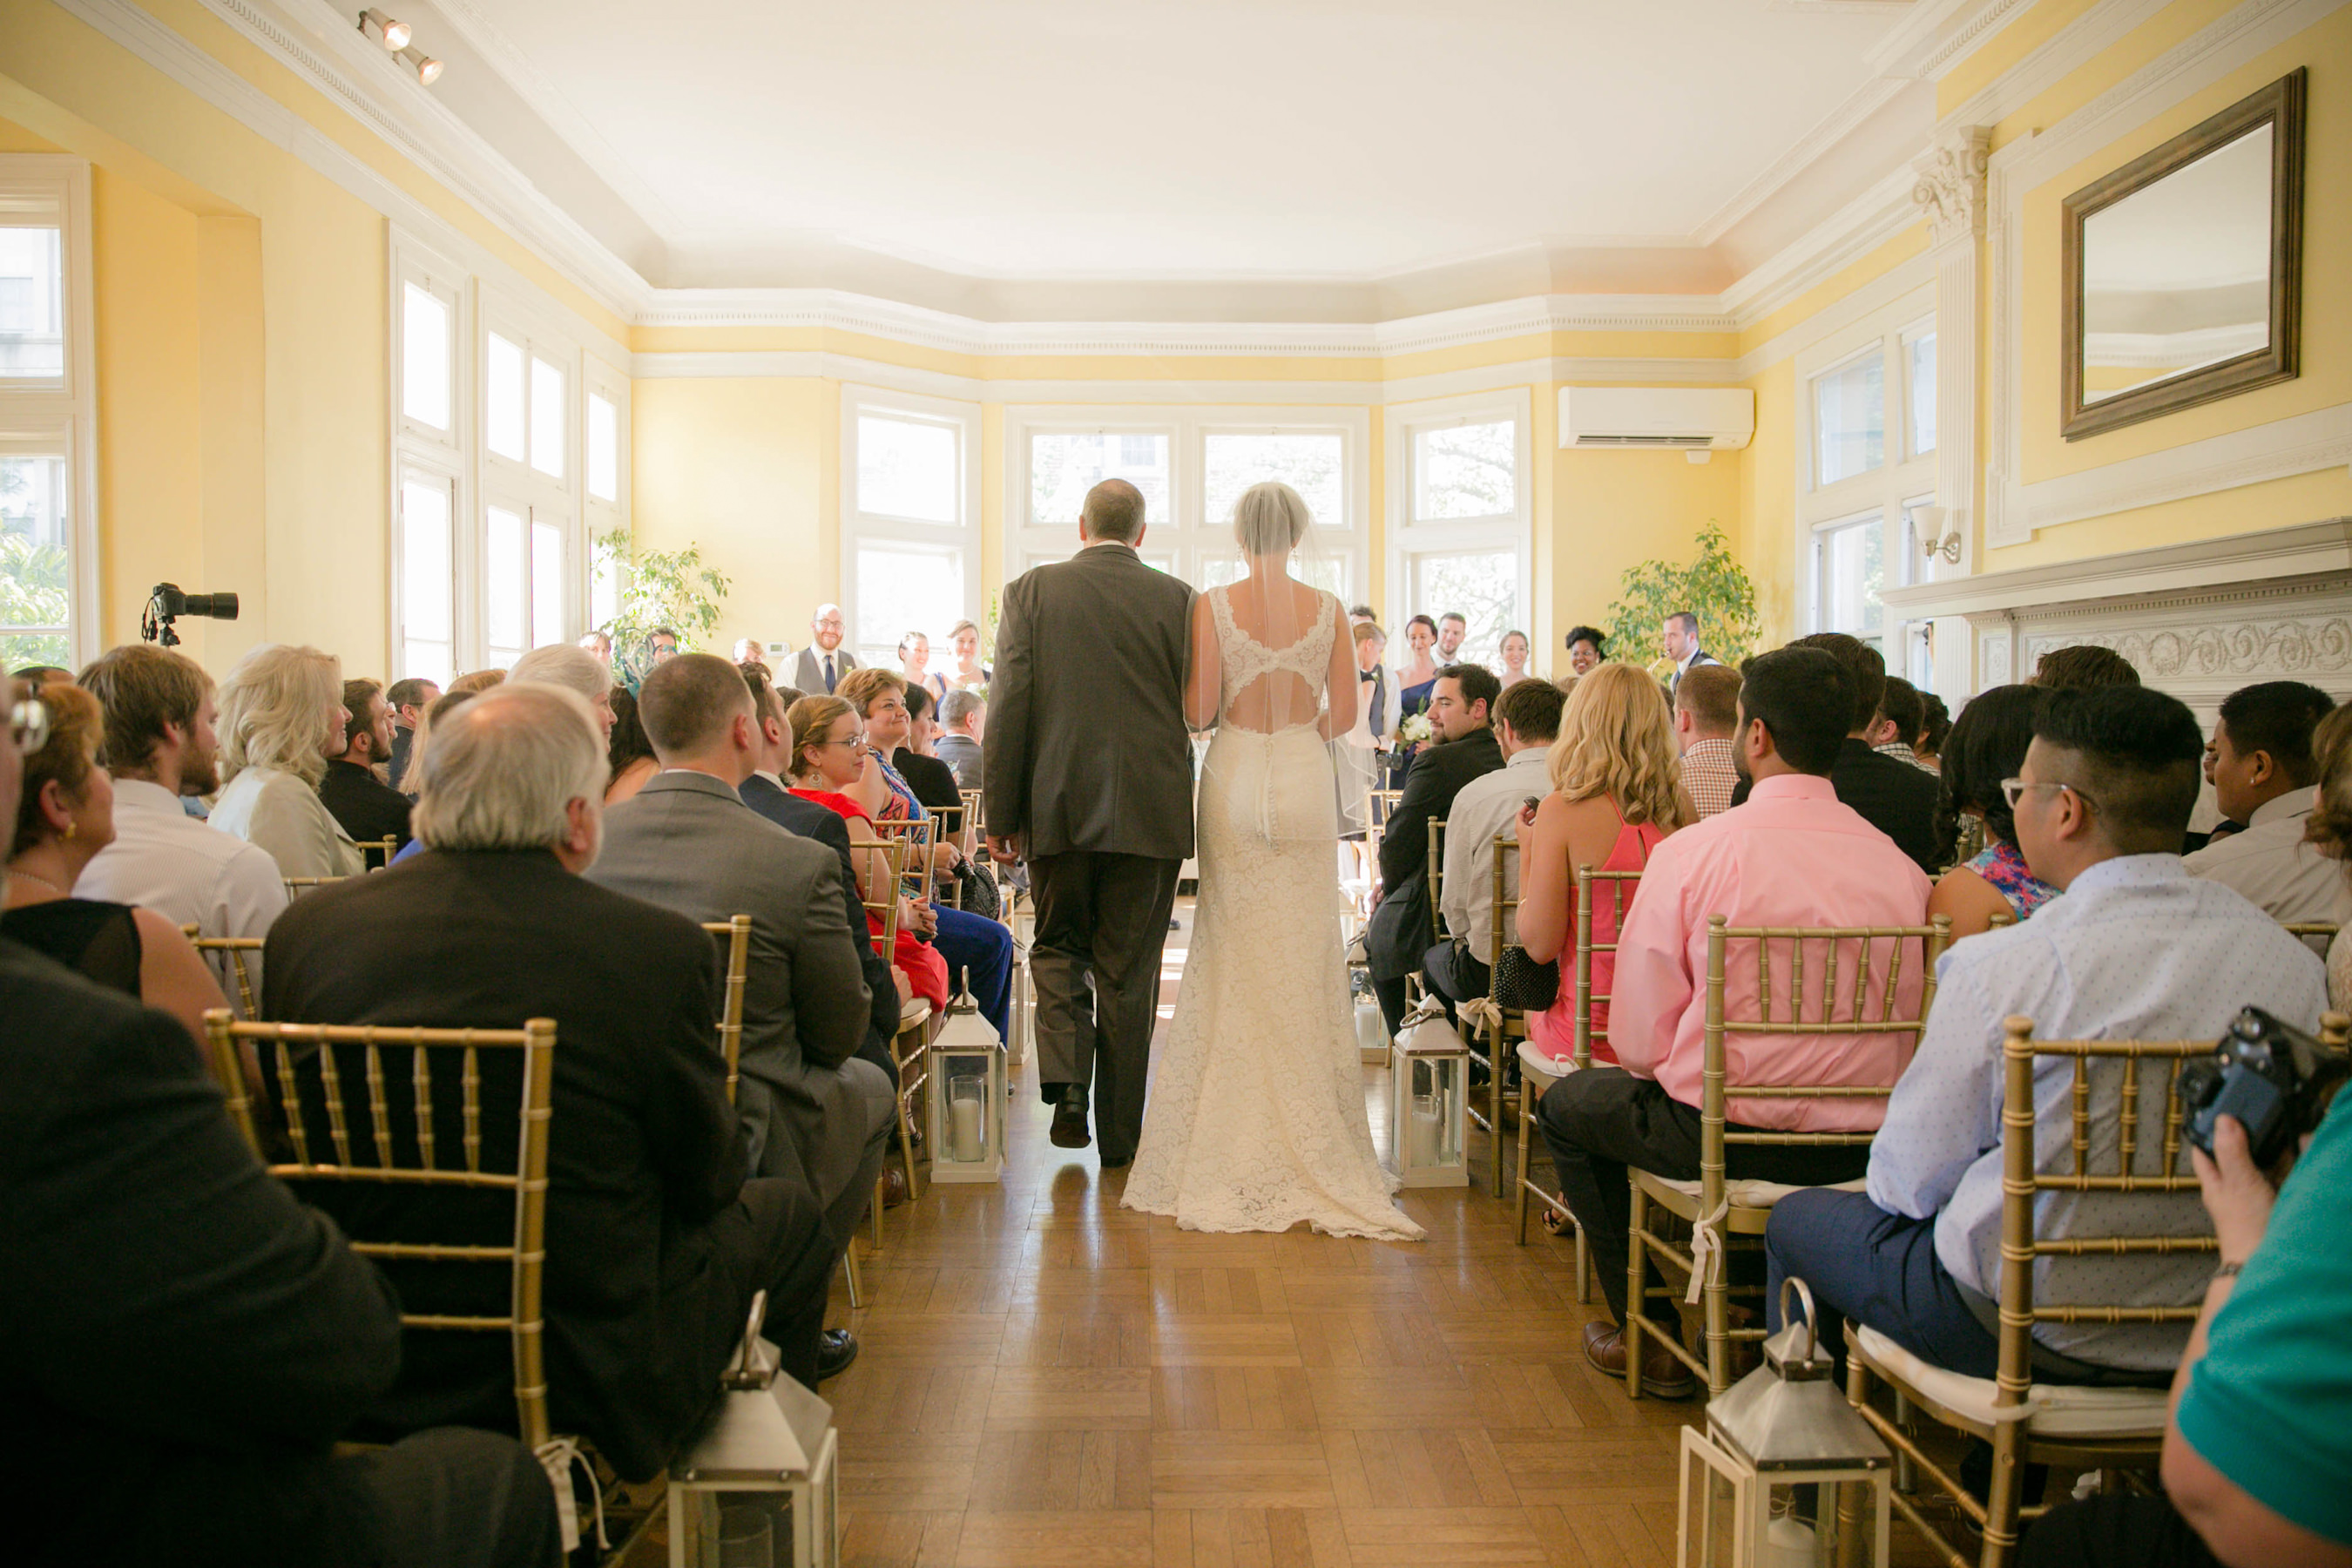 A beautiful wedding at Josphine Butler Mansion